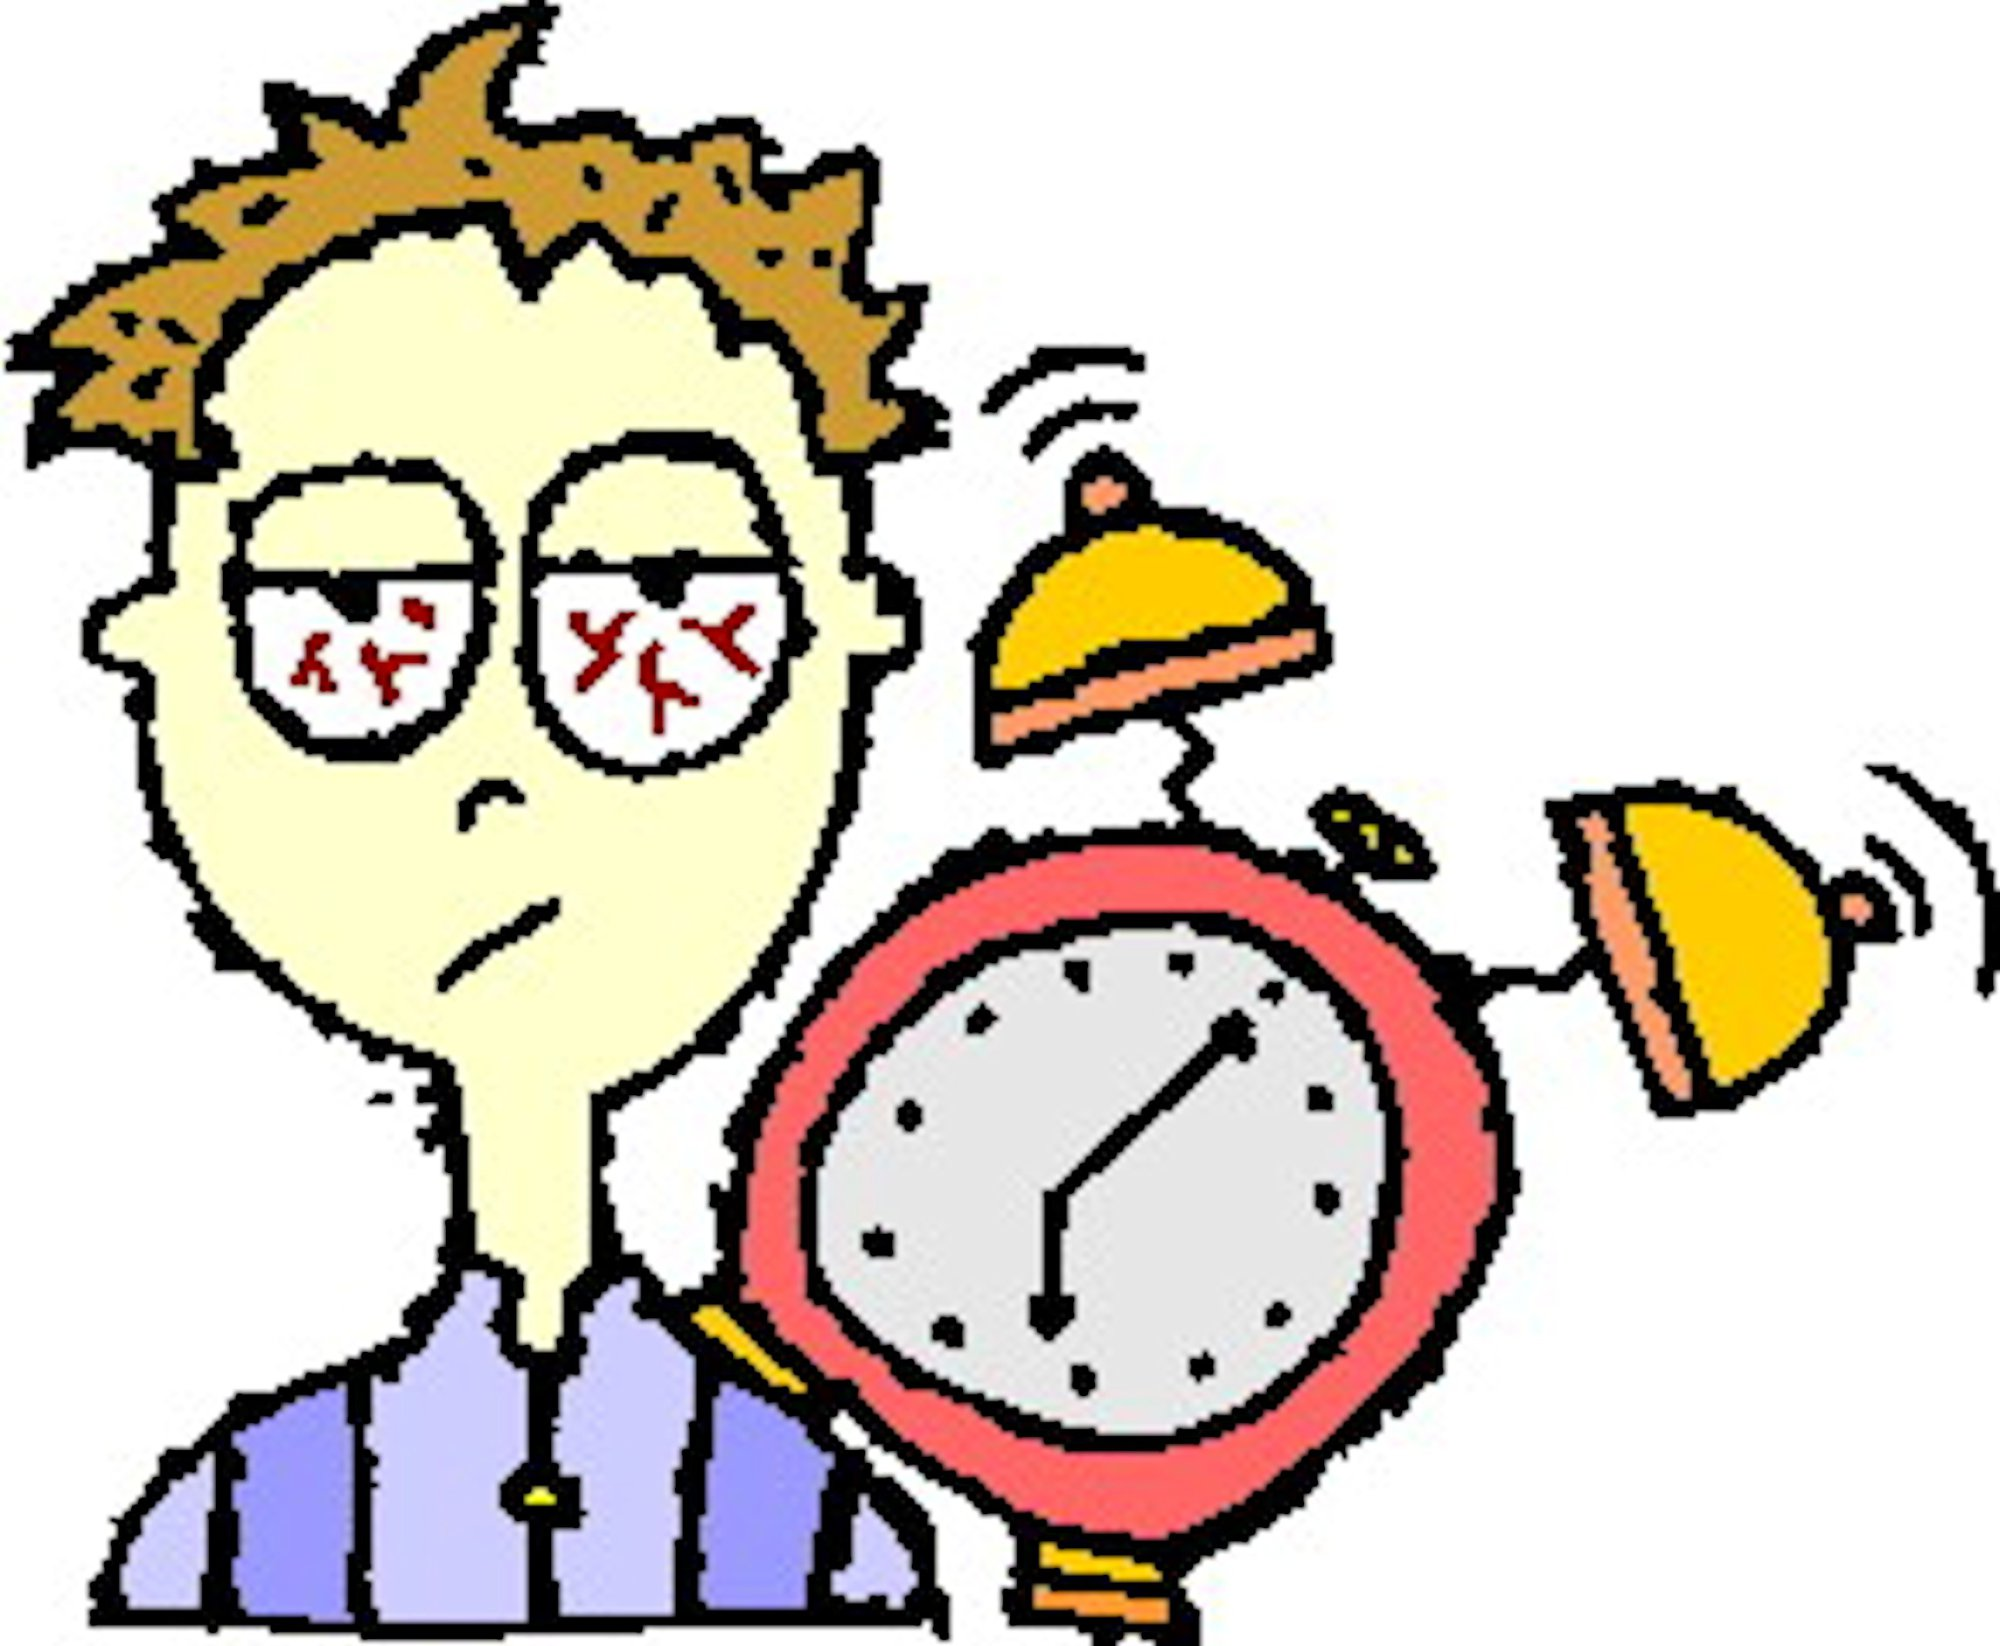 graphic royalty free Waking clipart insomnia. Free download best on